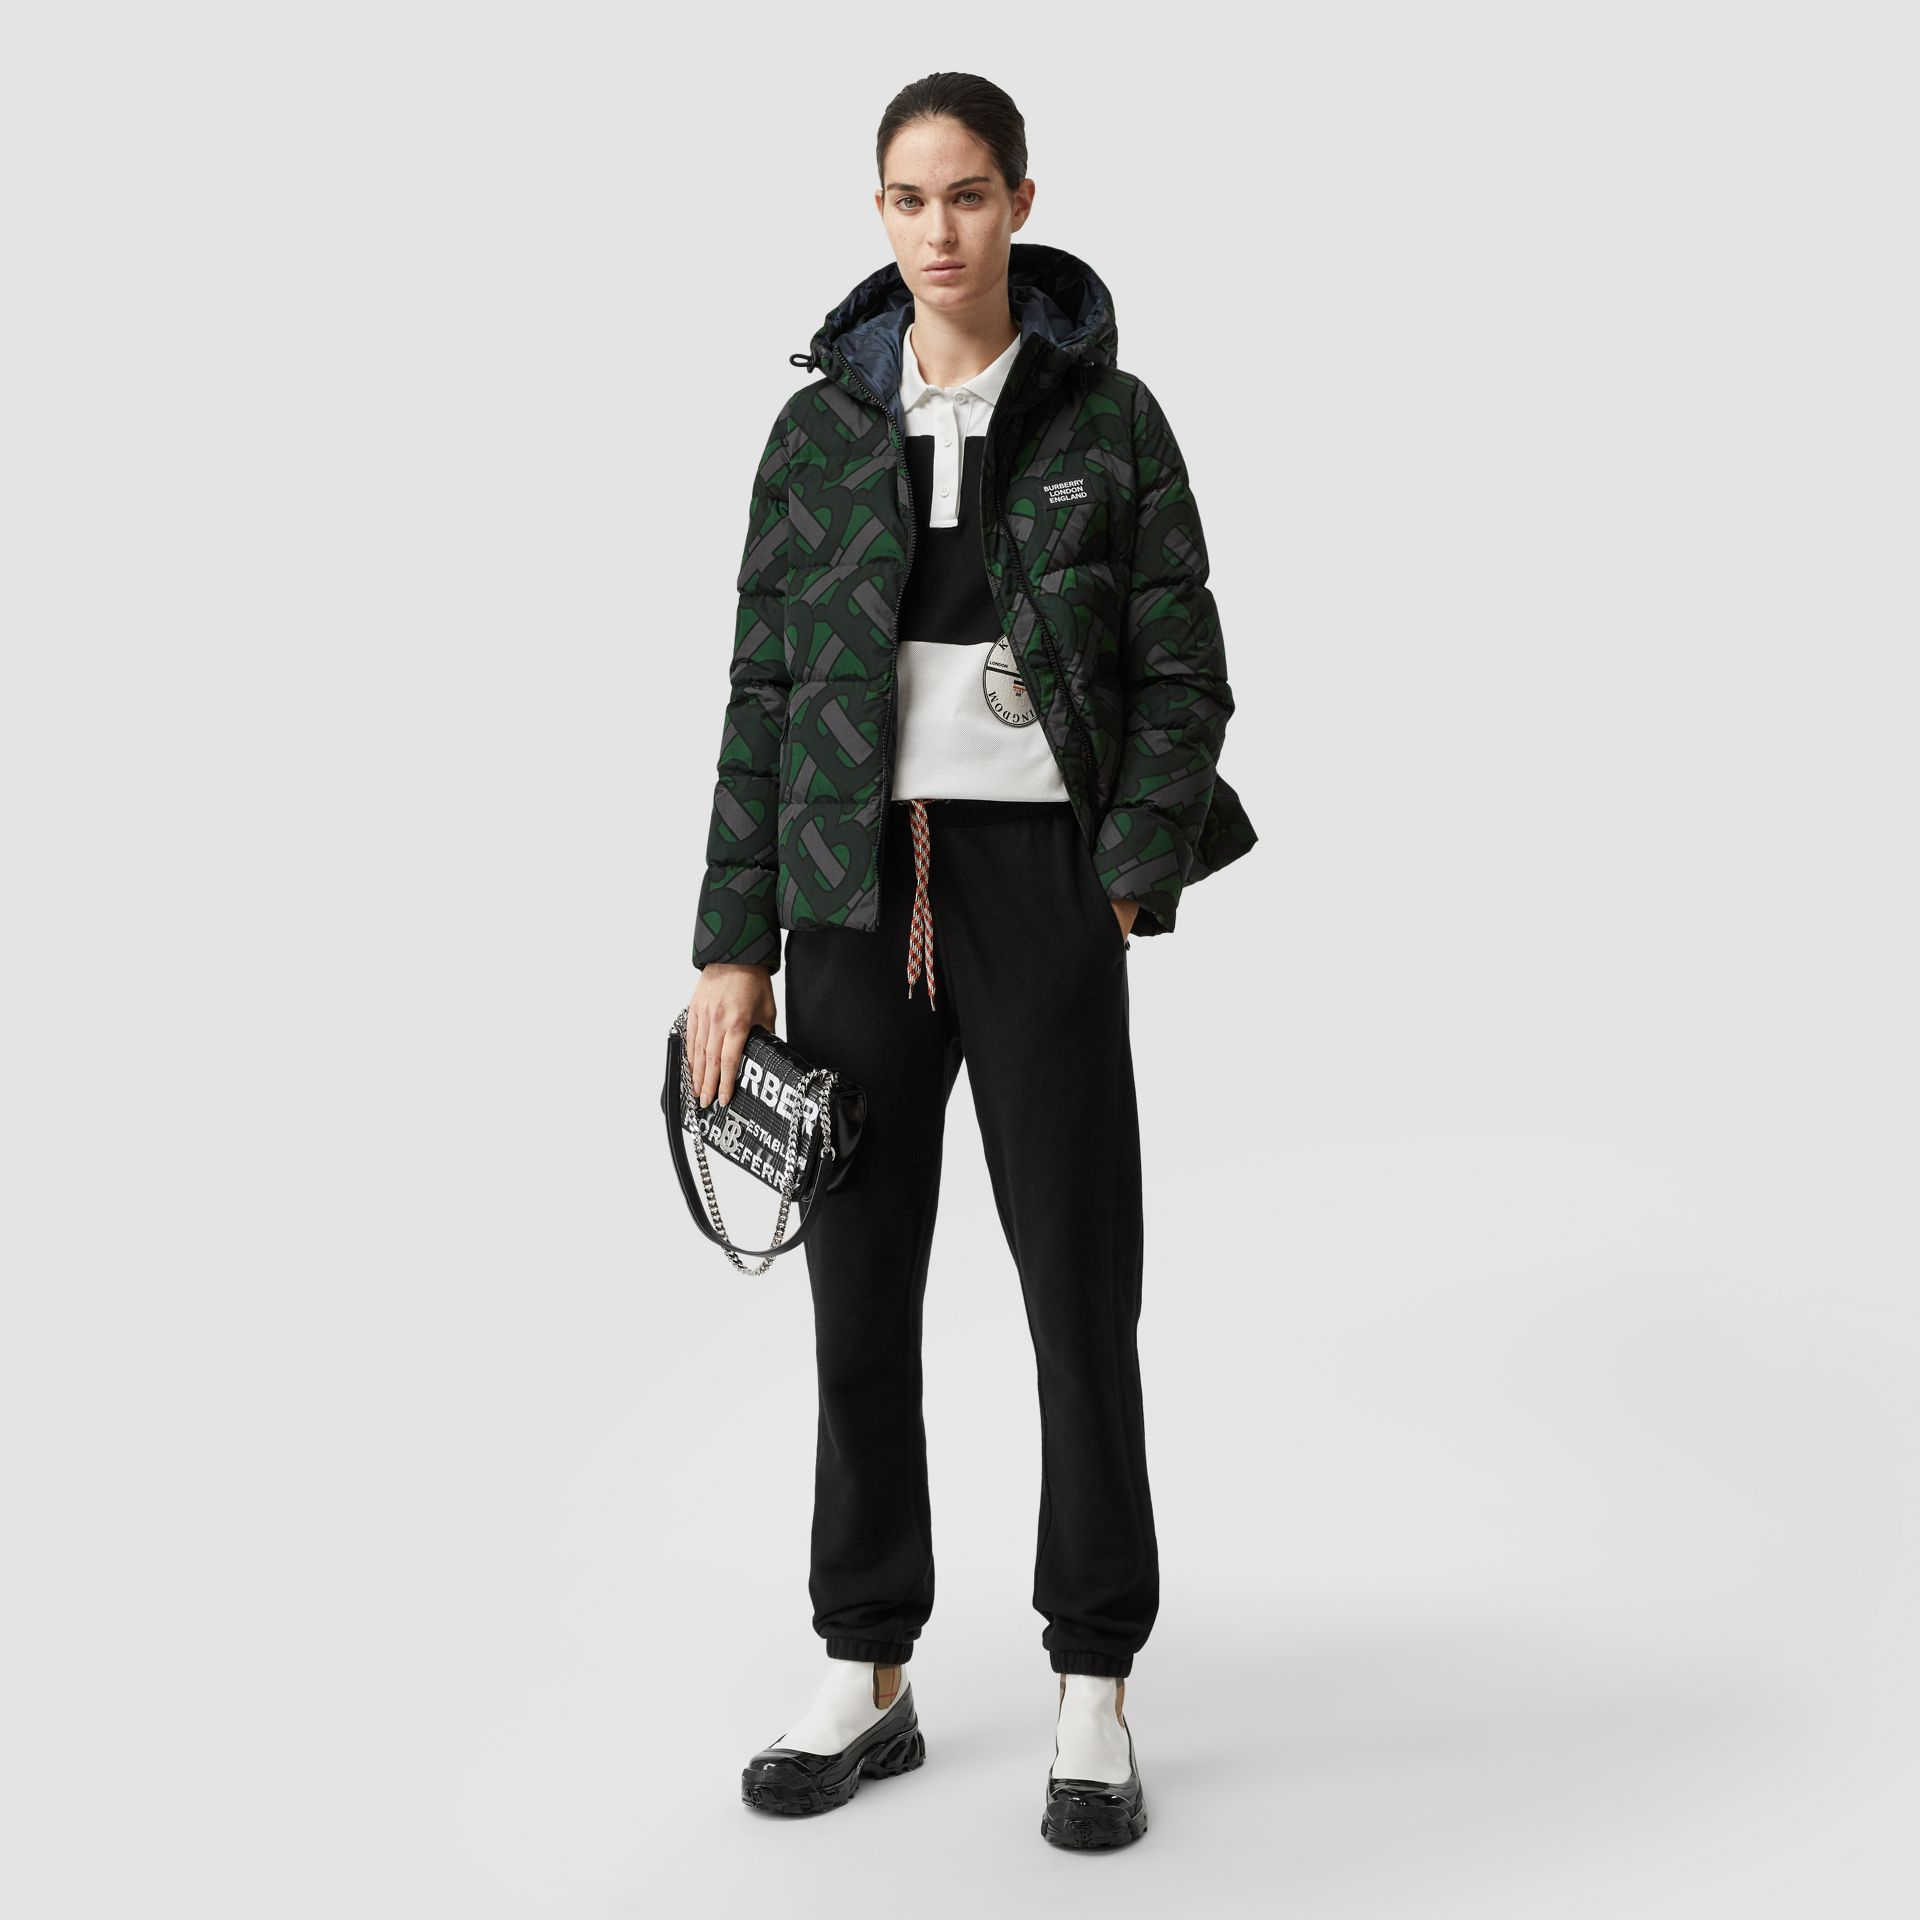 Monogram Print Puffer Jacket in Forest Green | Burberry - gallery image 2